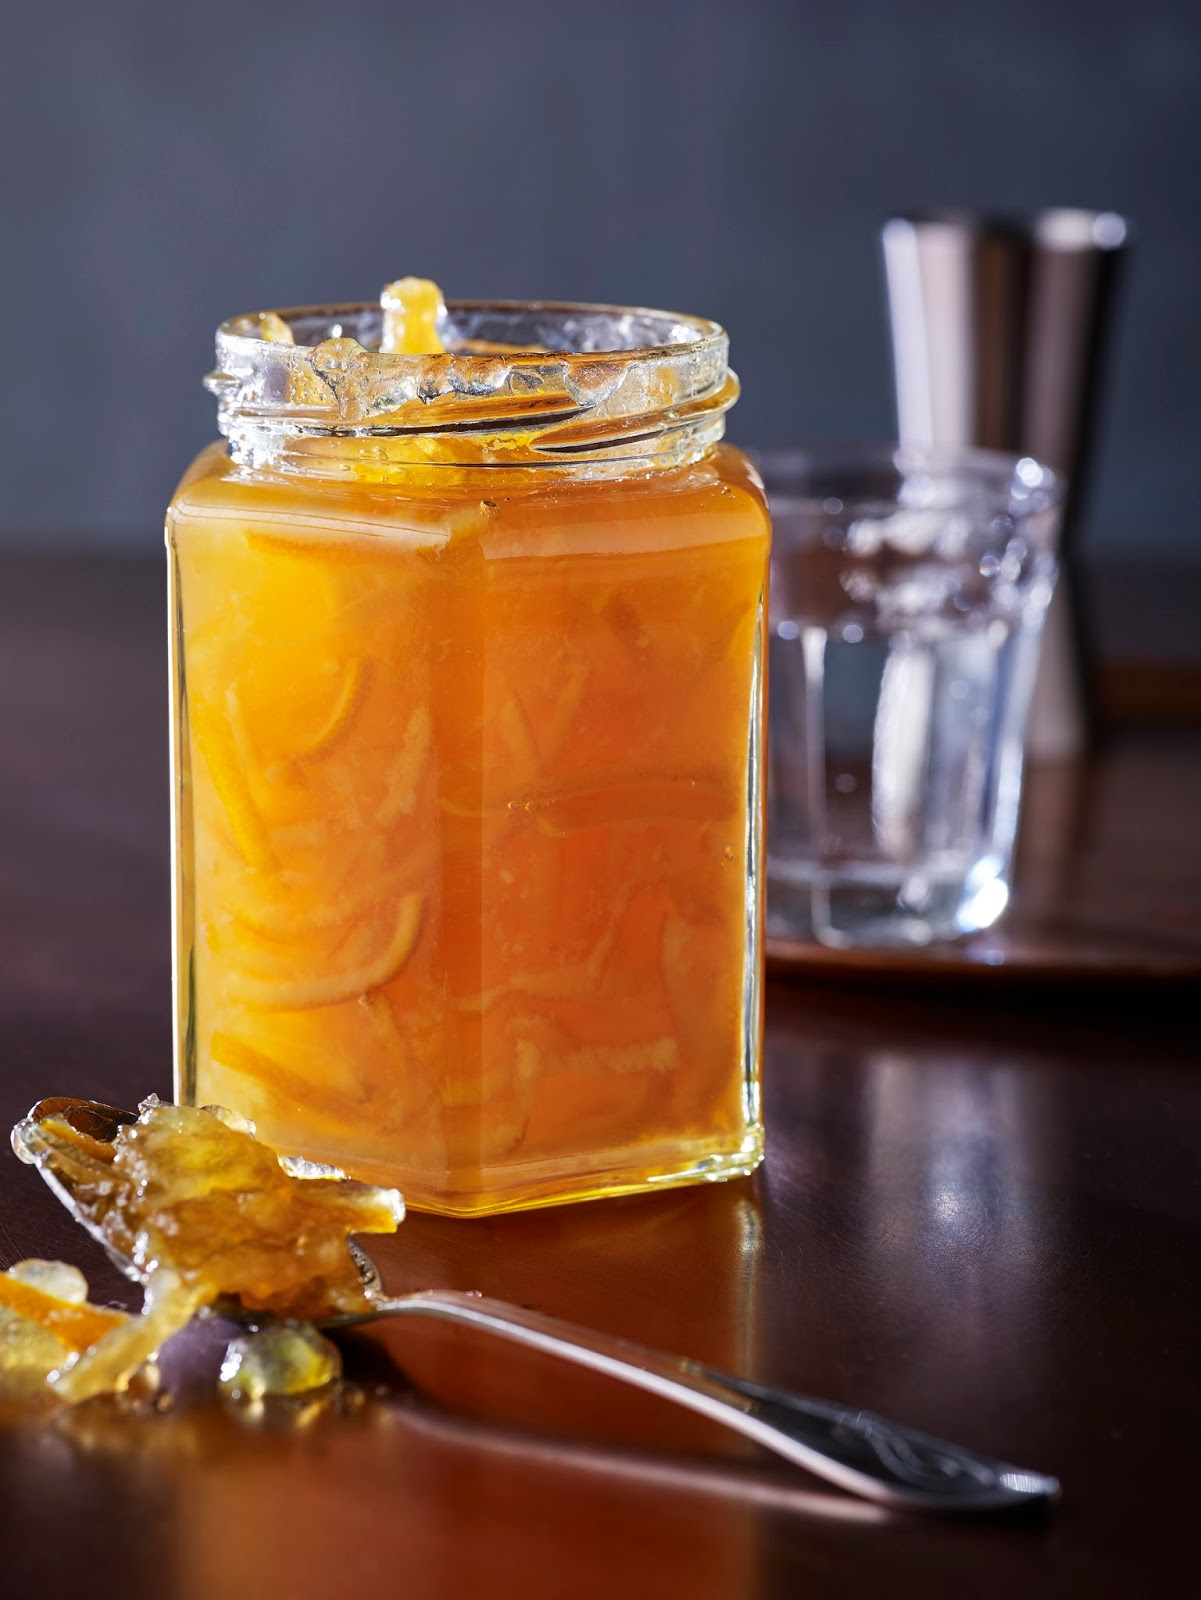 7 Home Made Marmalade Recipes To Try Out